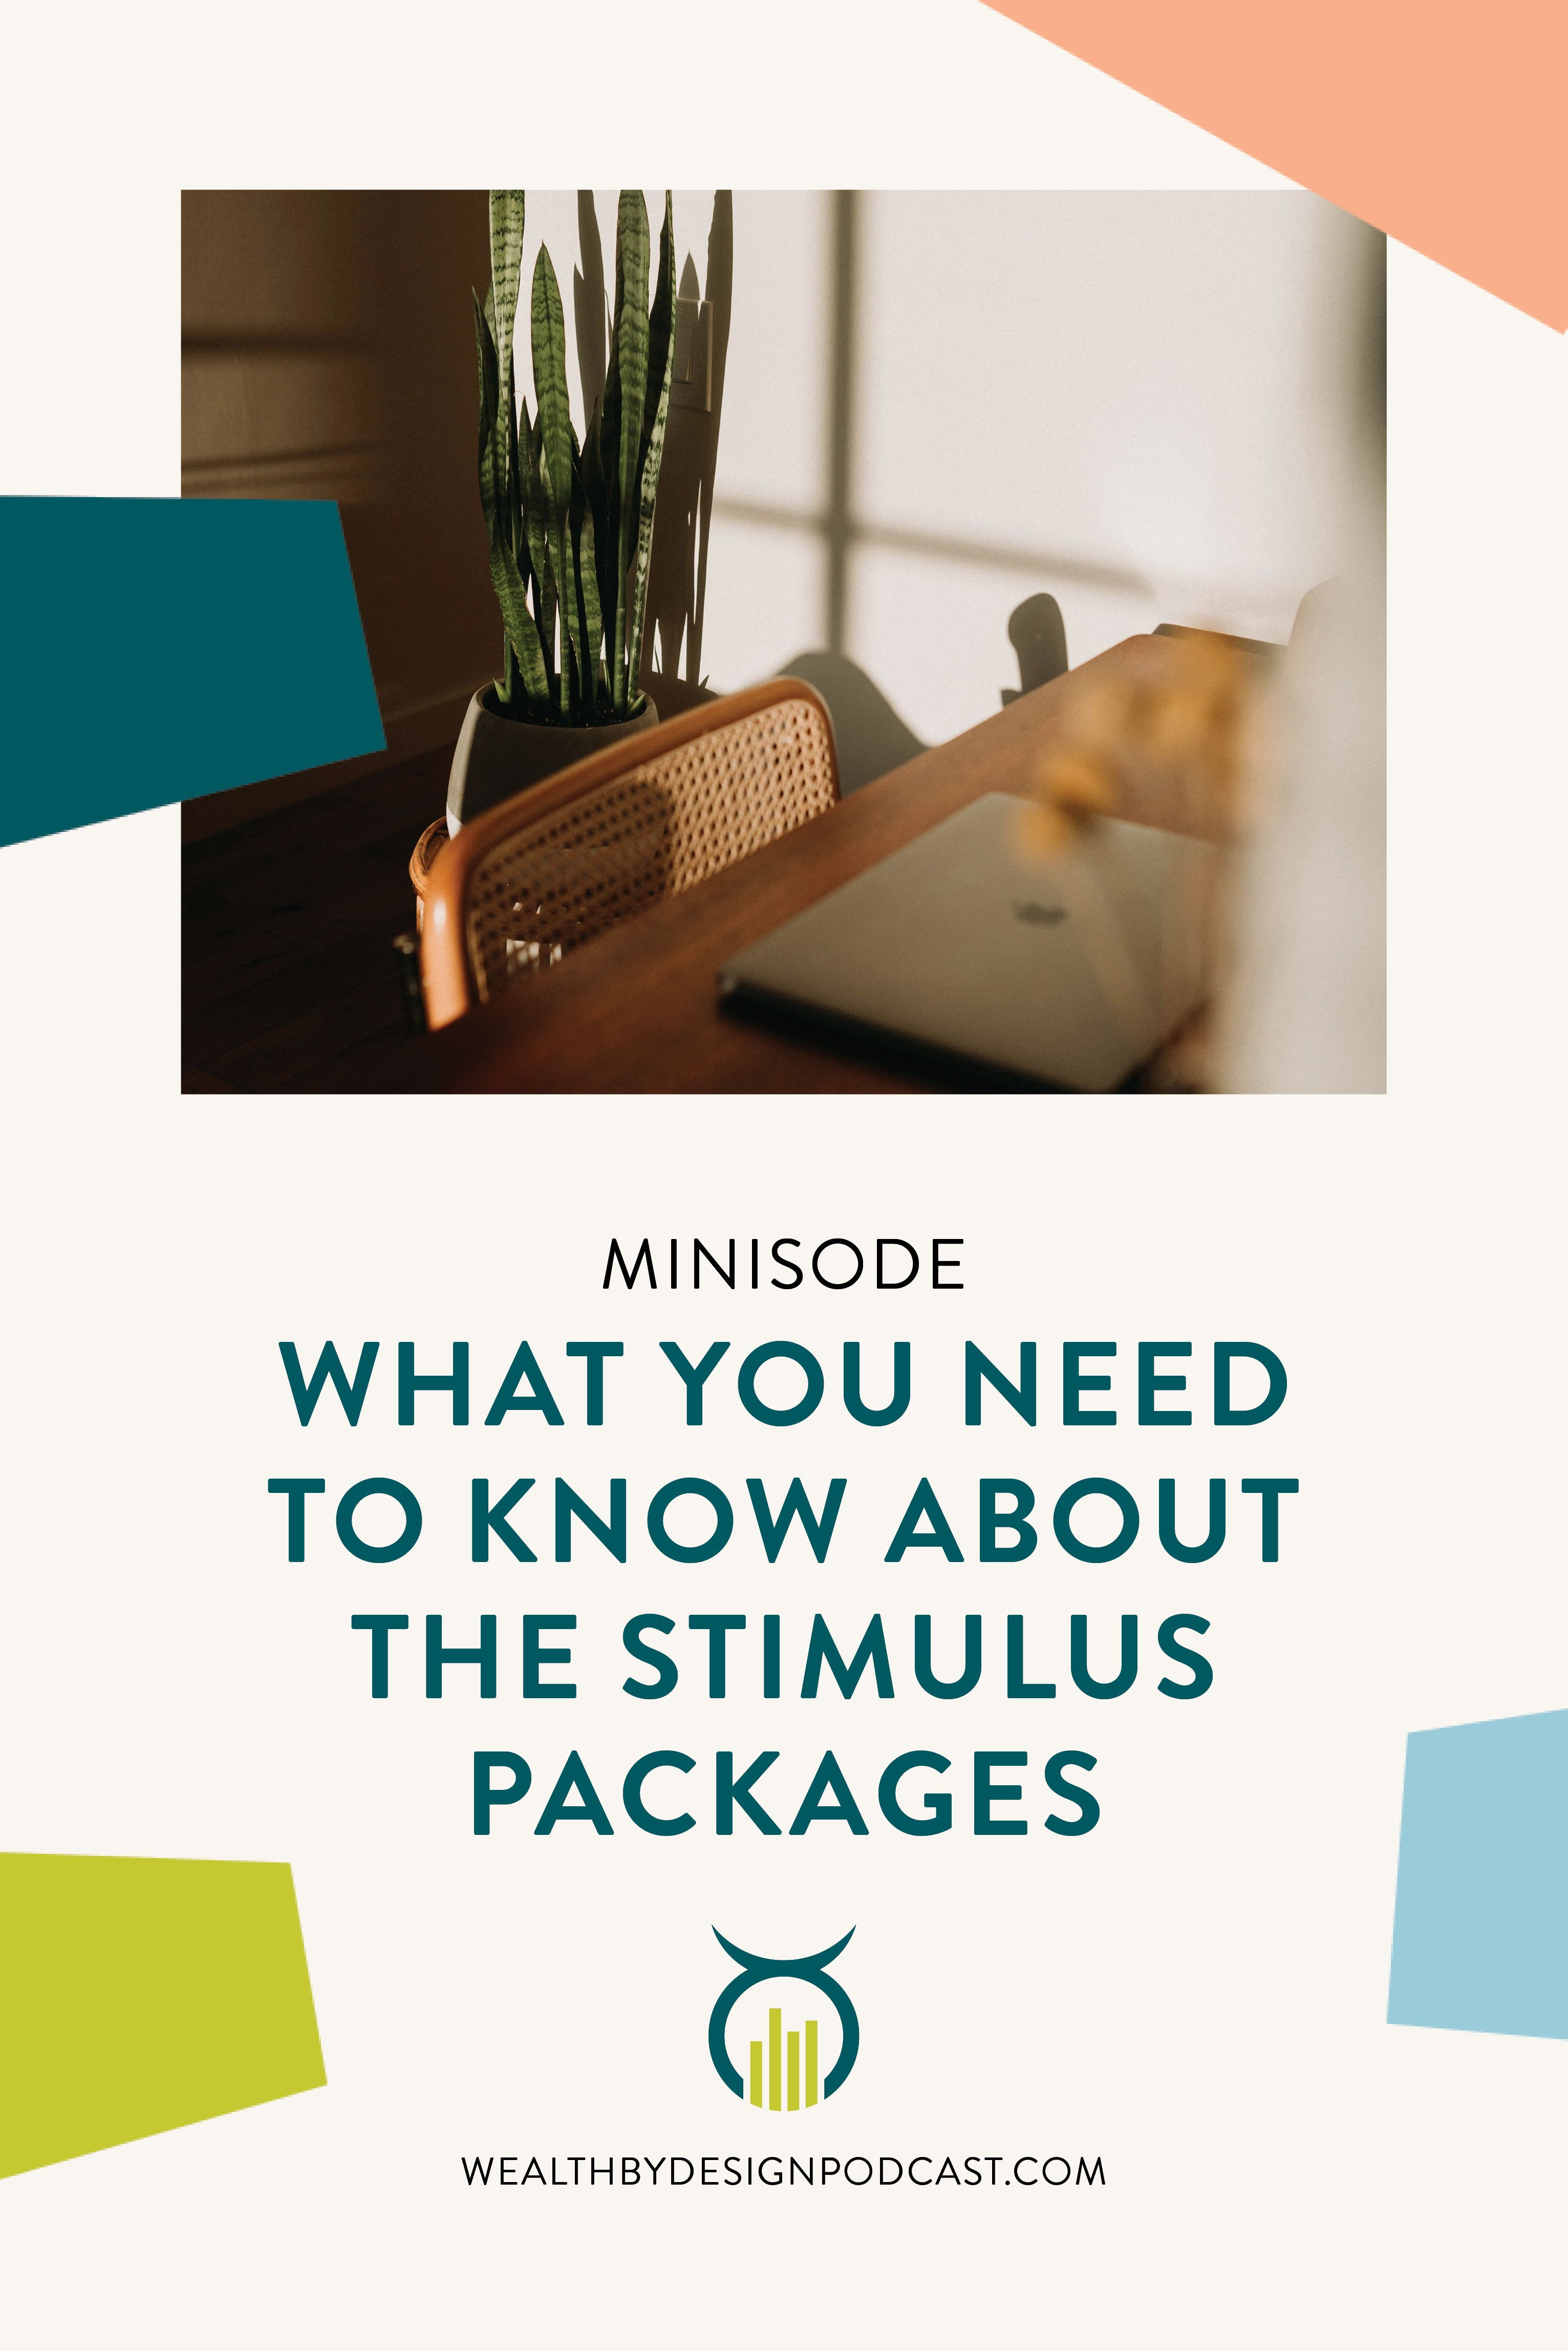 What You Need to Know About the Current Stimulus Packages